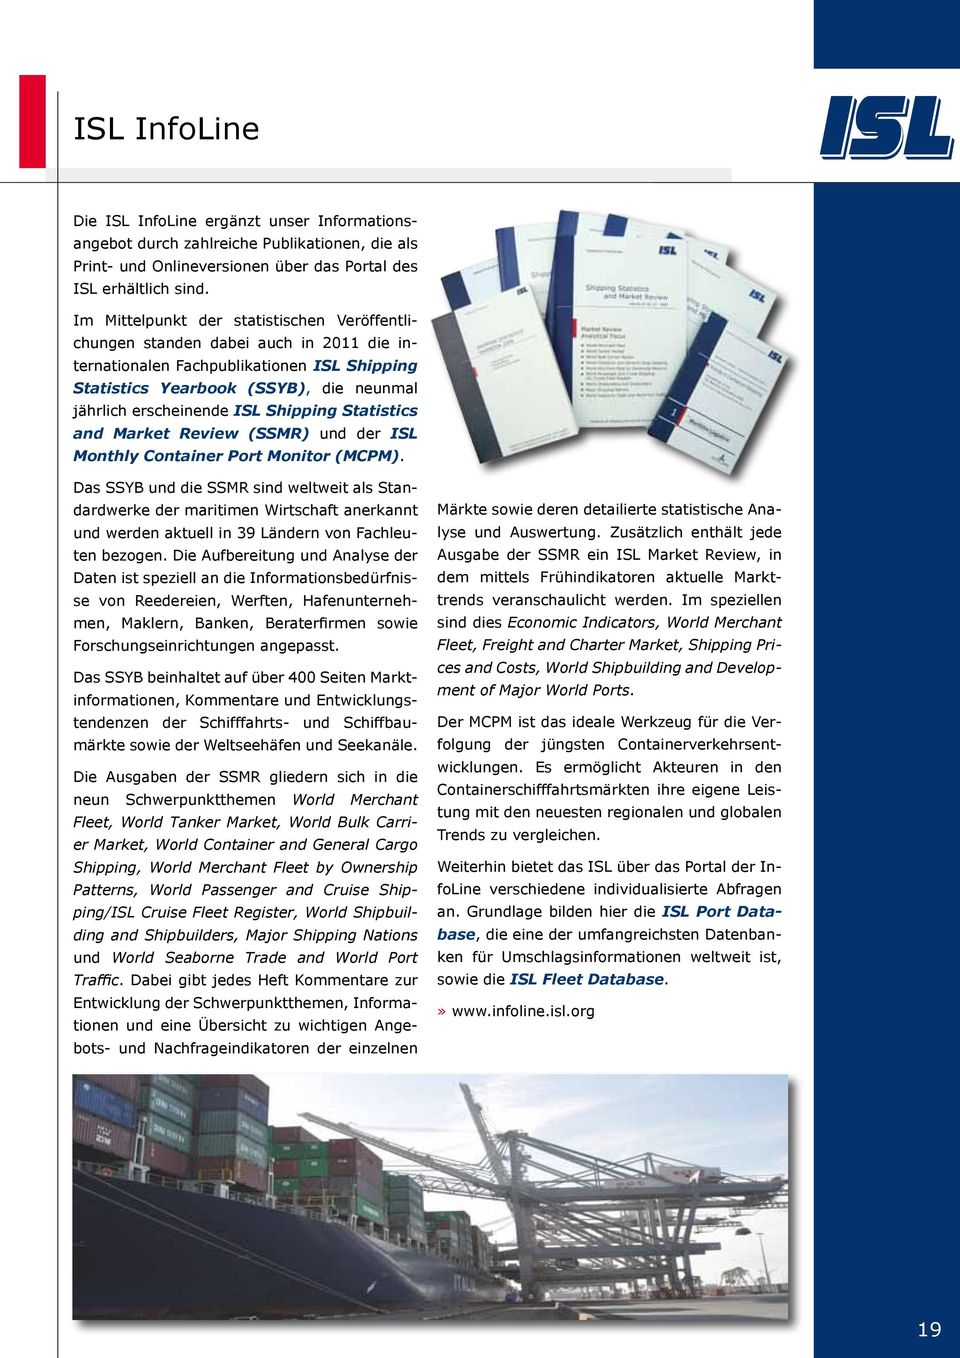 Shipping Statistics and Market Review (SSMR) und der ISL Monthly Container Port Monitor (MCPM).